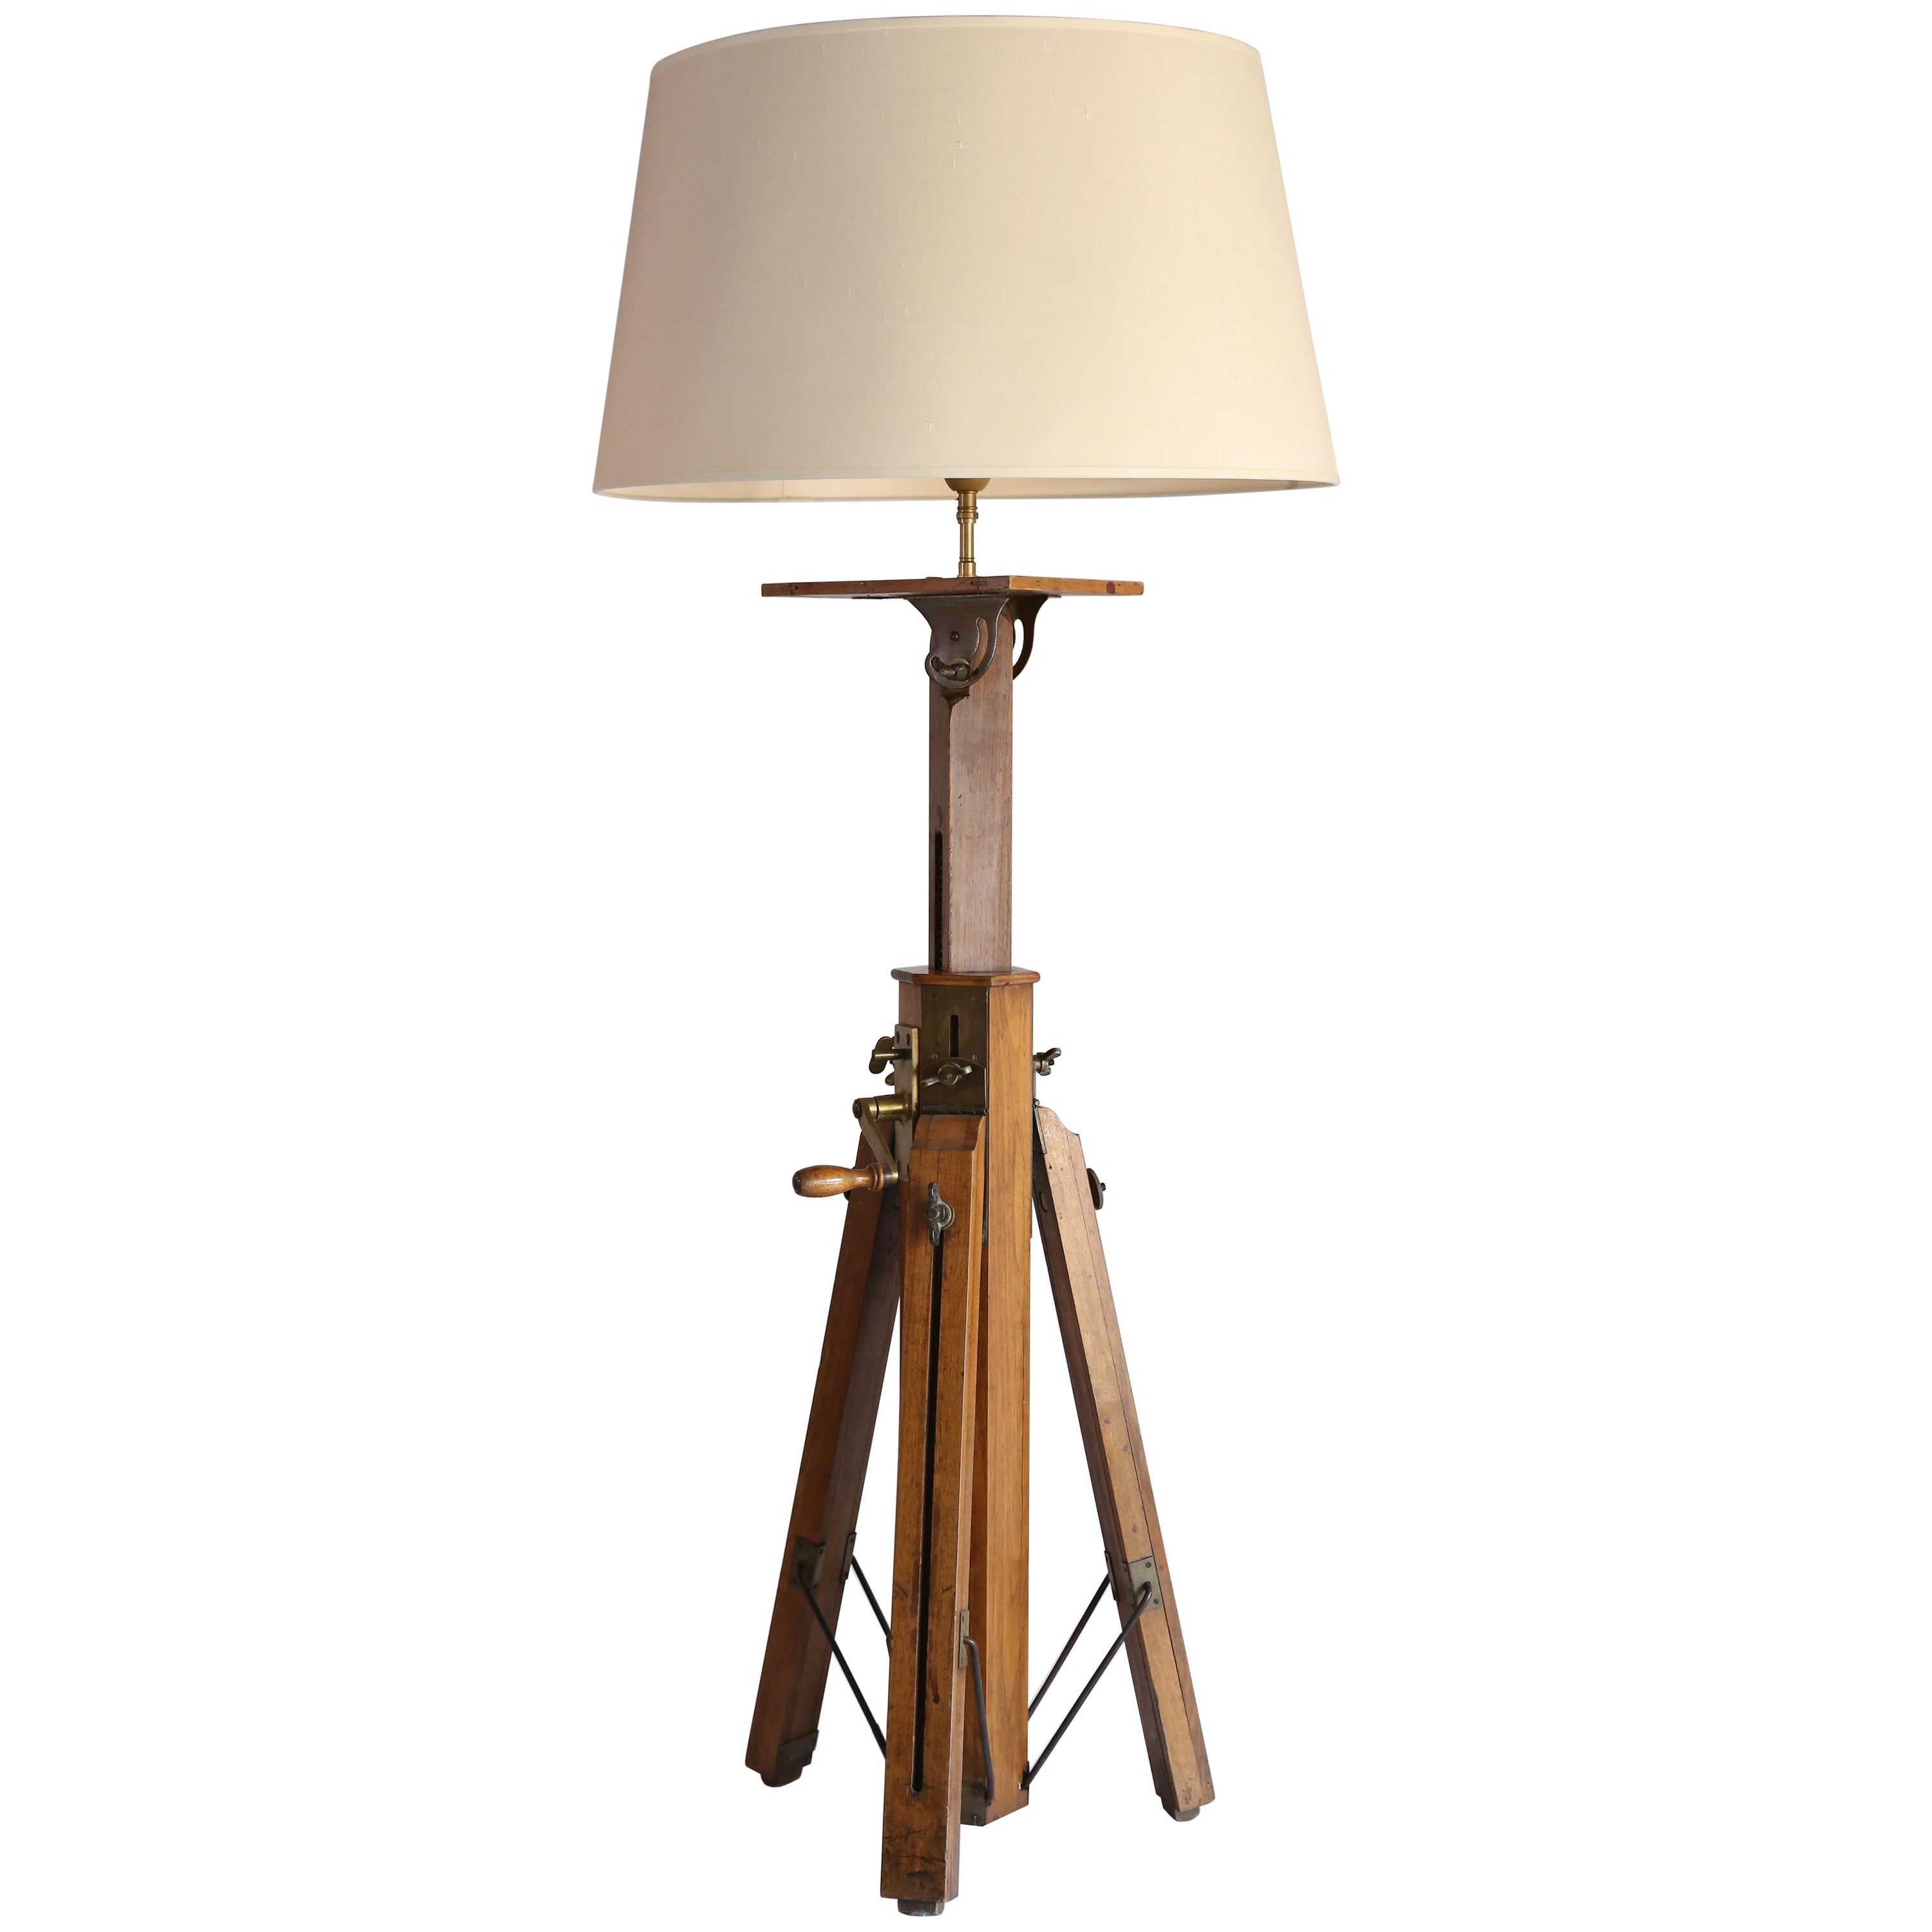 Table Lamp From Vintage Surveyor S Tripod At 1stdibs